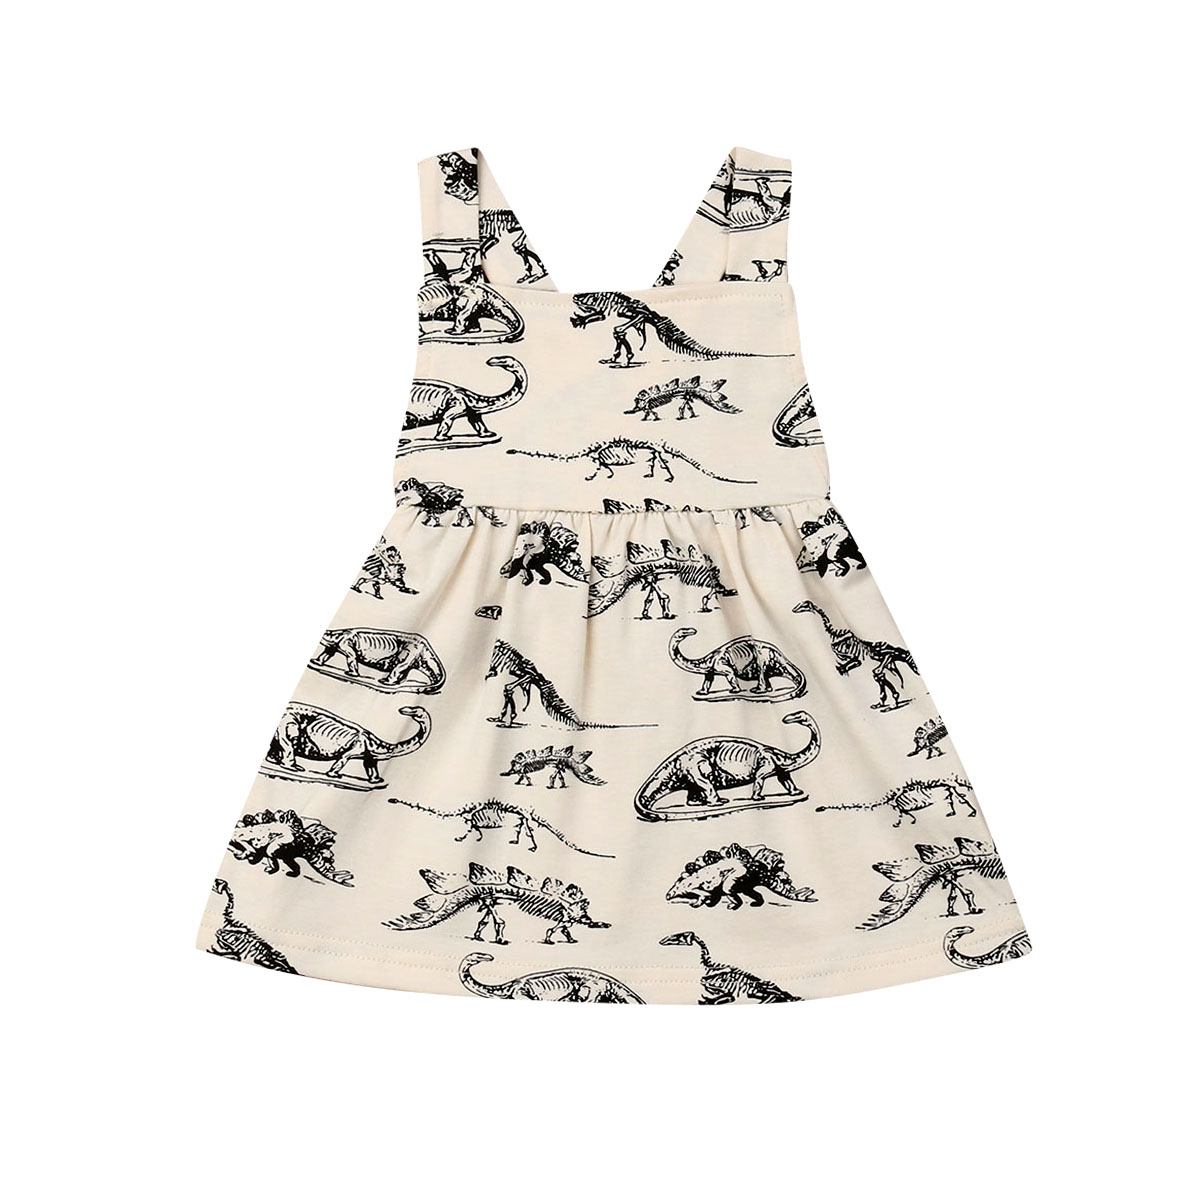 Frugal Pudcoco 2019 New Brand Cute Newborn Kid Baby Girls Cotton Sleeveless Dress Dinosaur Sundress Clothes A Plastic Case Is Compartmentalized For Safe Storage Girls' Clothing